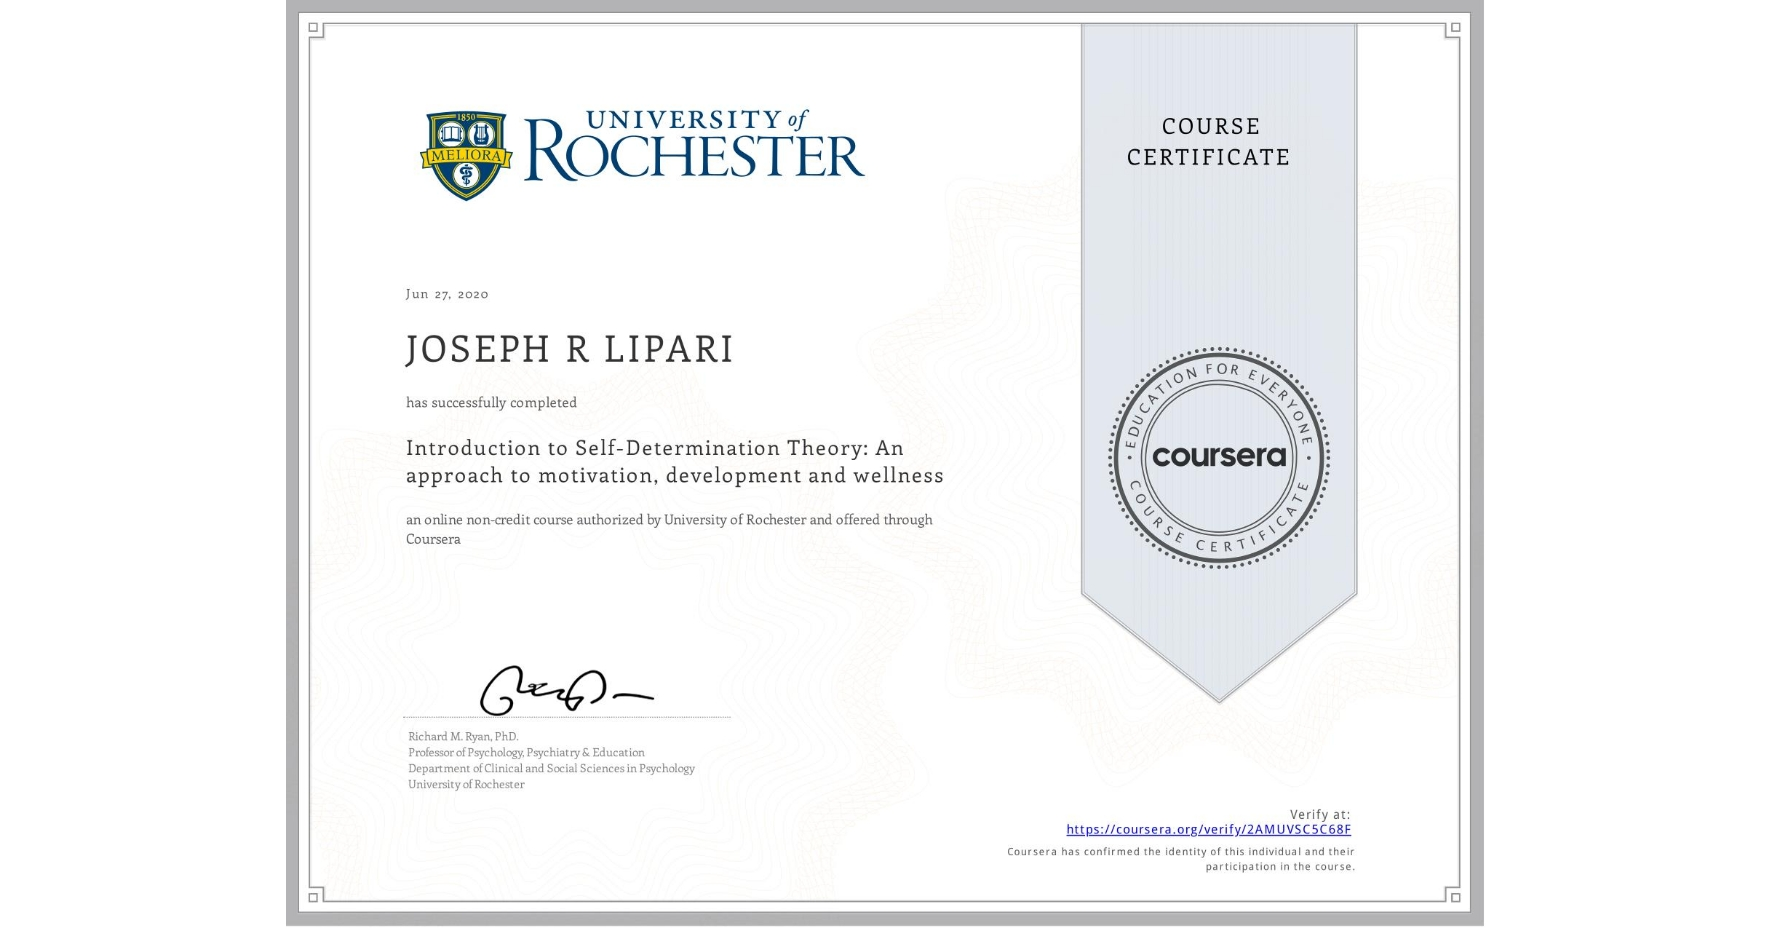 View certificate for JOSEPH R  LIPARI, Introduction to Self-Determination Theory: An approach to motivation, development and wellness, an online non-credit course authorized by University of Rochester and offered through Coursera